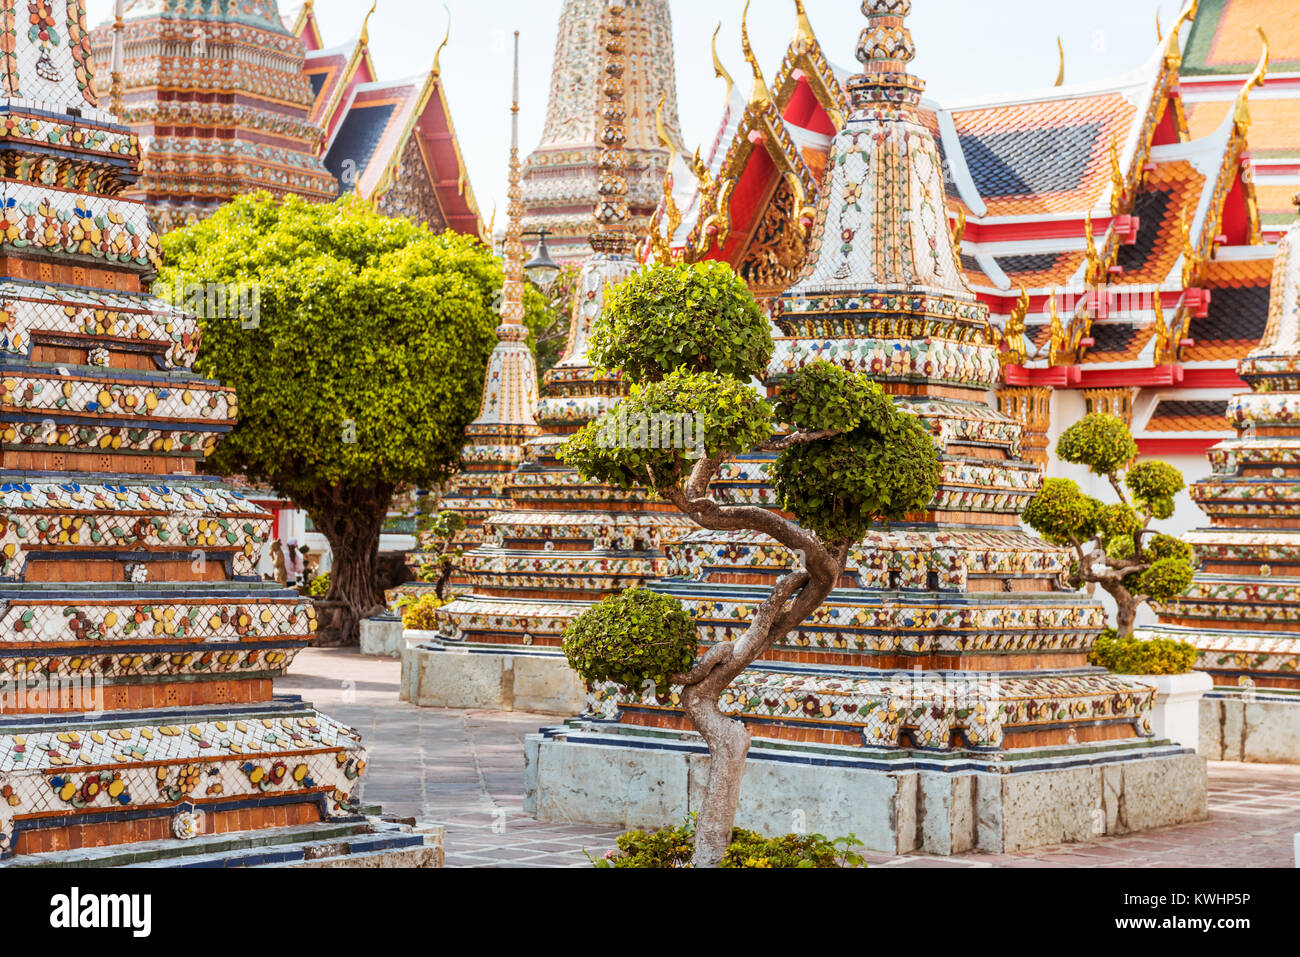 Wat Pho à Bangkok, monument de la Thaïlande Photo Stock